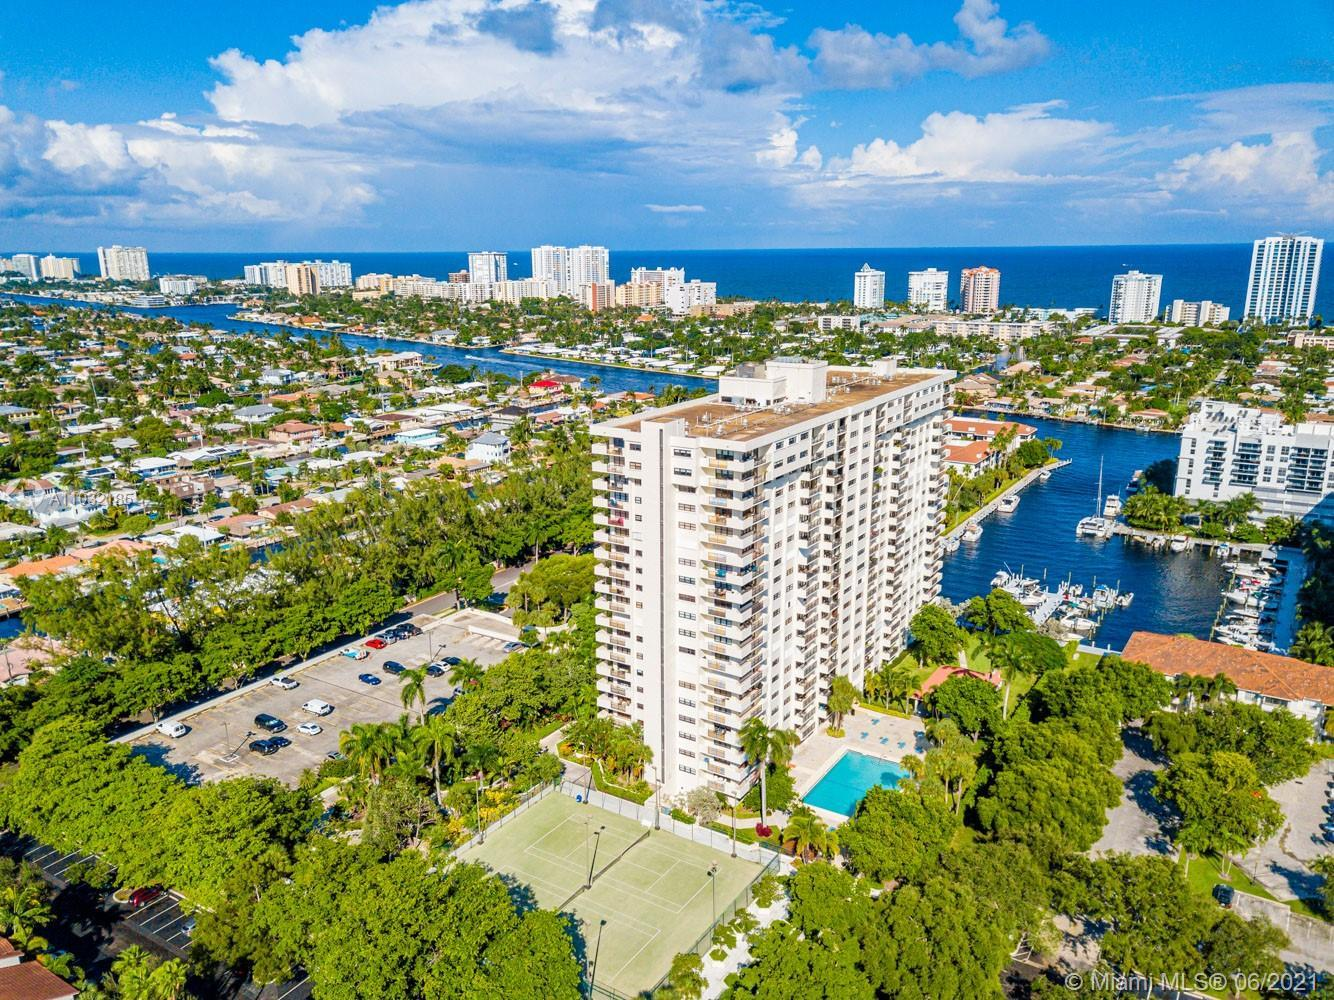 THREE BEDROOM CORNER UNIT FACING SOUTH EAST WITH DIRECT OCEAN, INTRACOASTAL AND MARINA VIEWS with wr